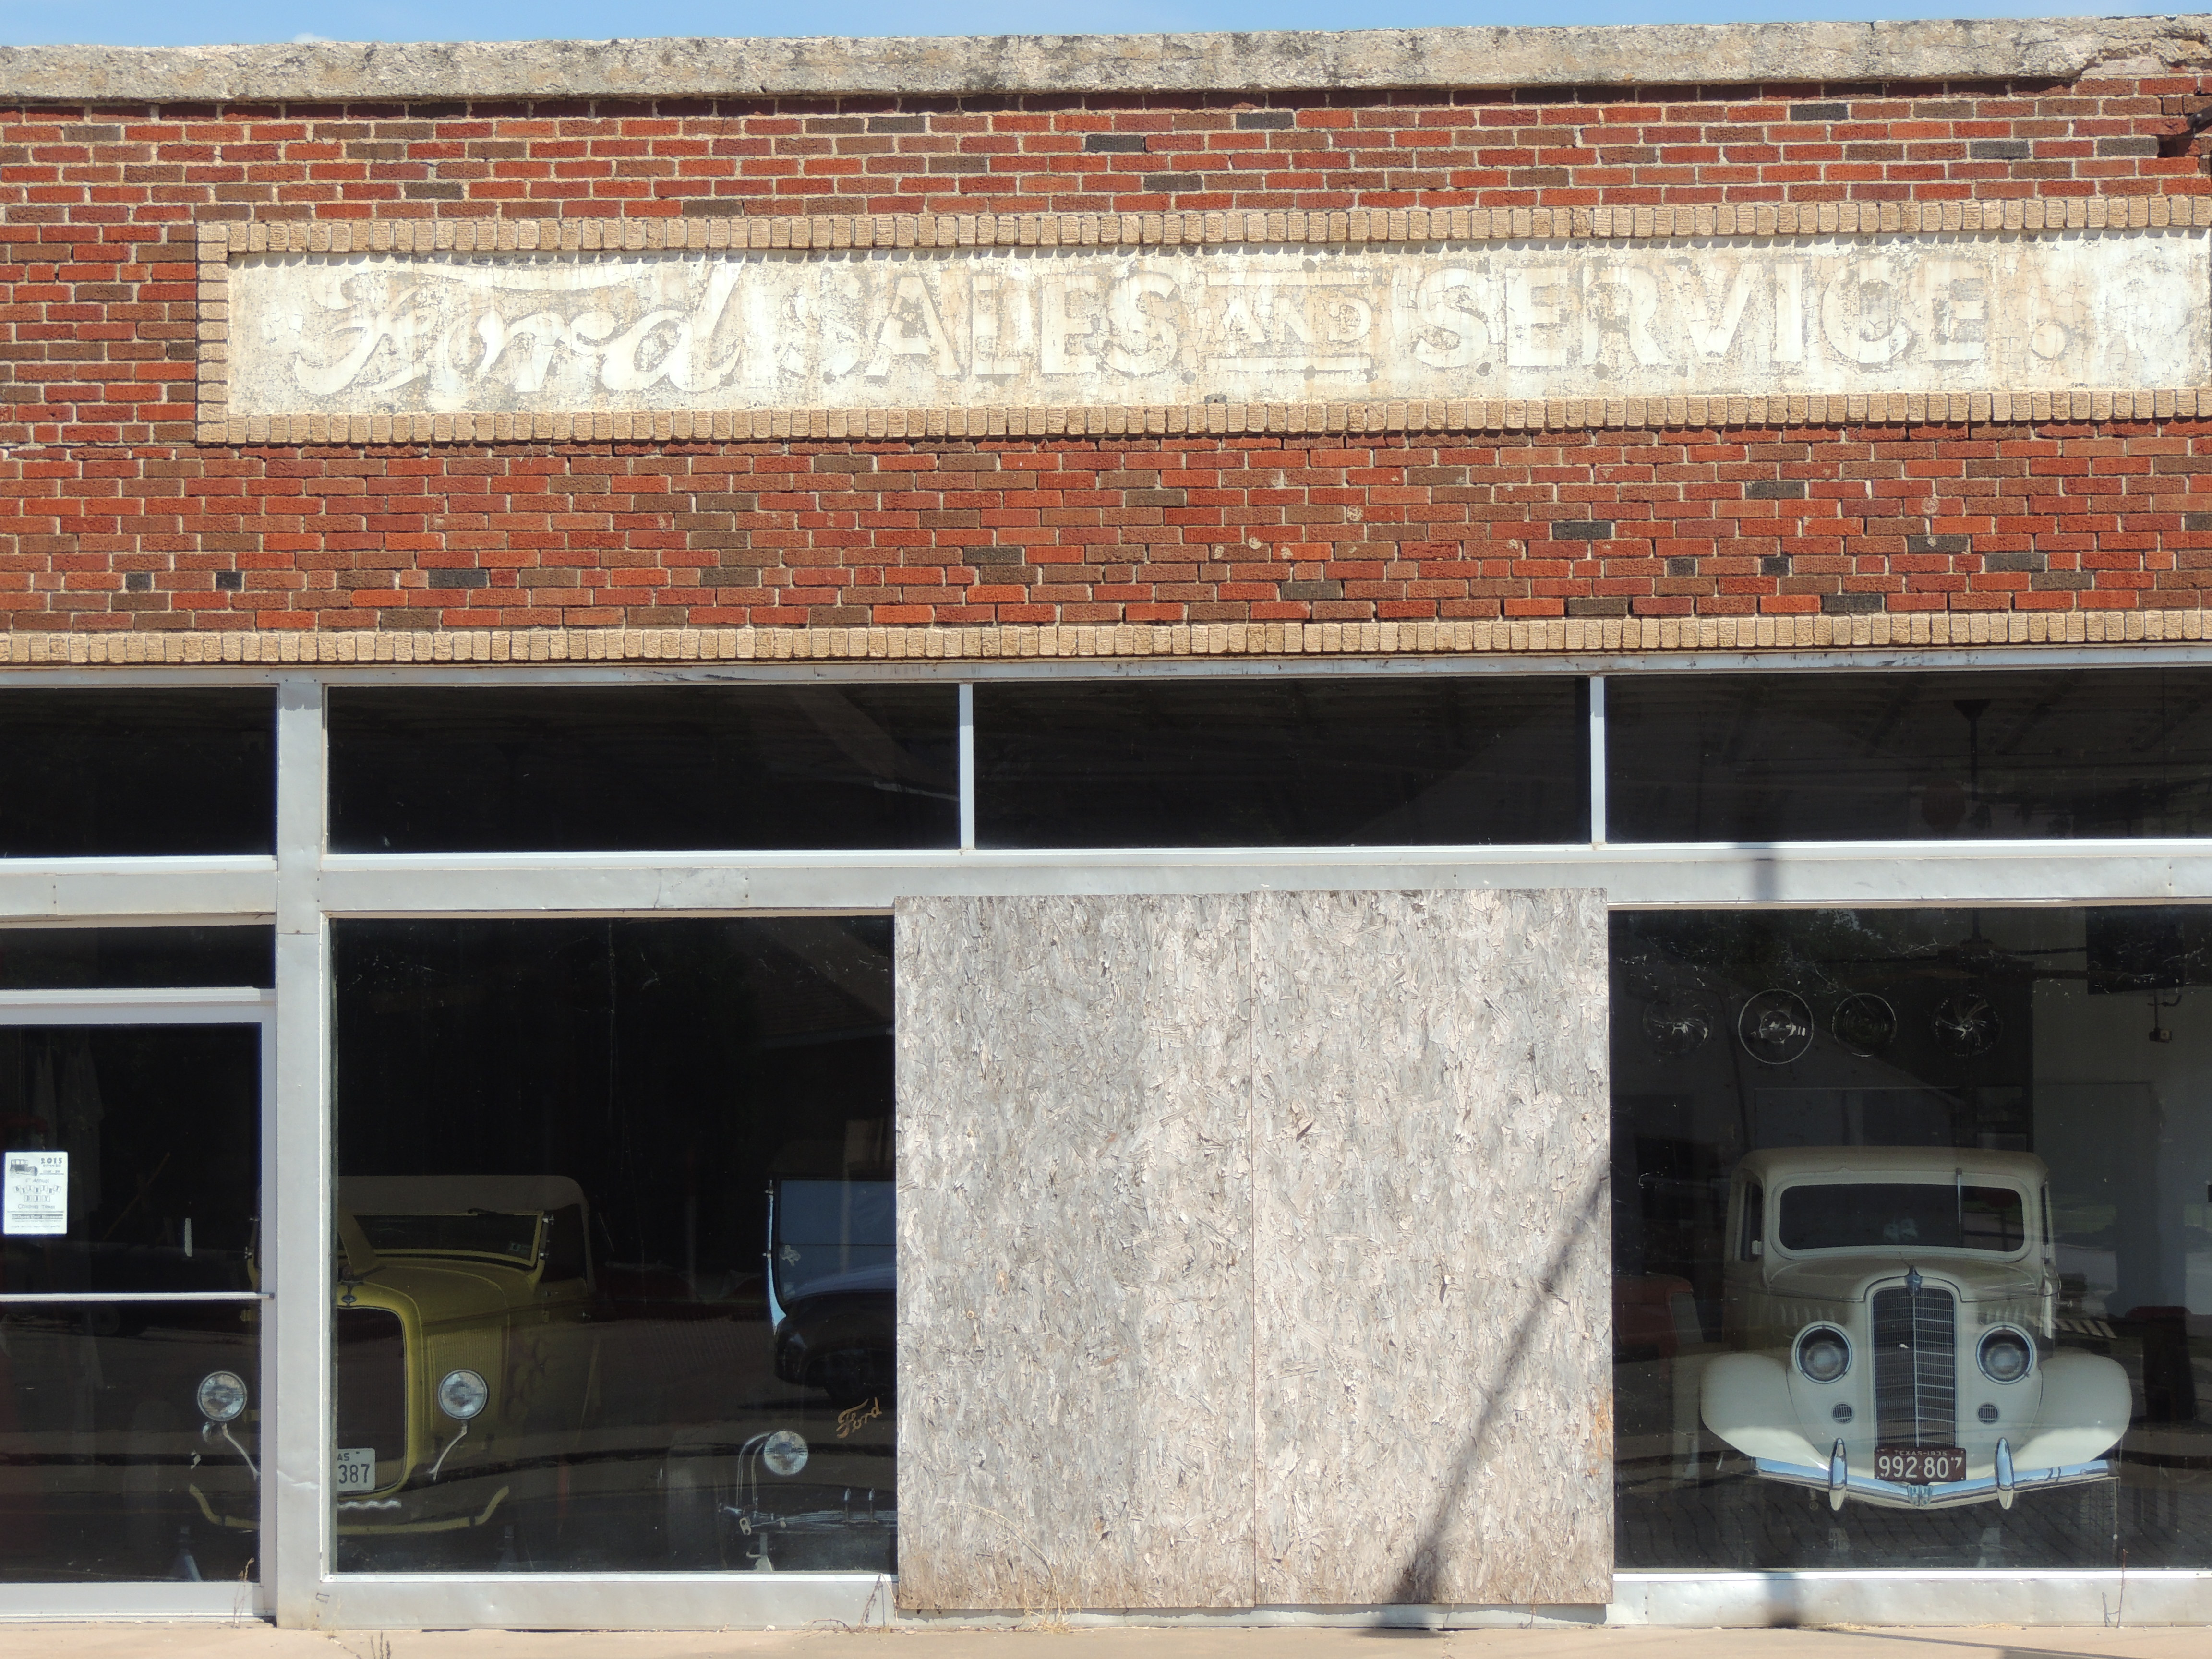 Old Ford stores and cars